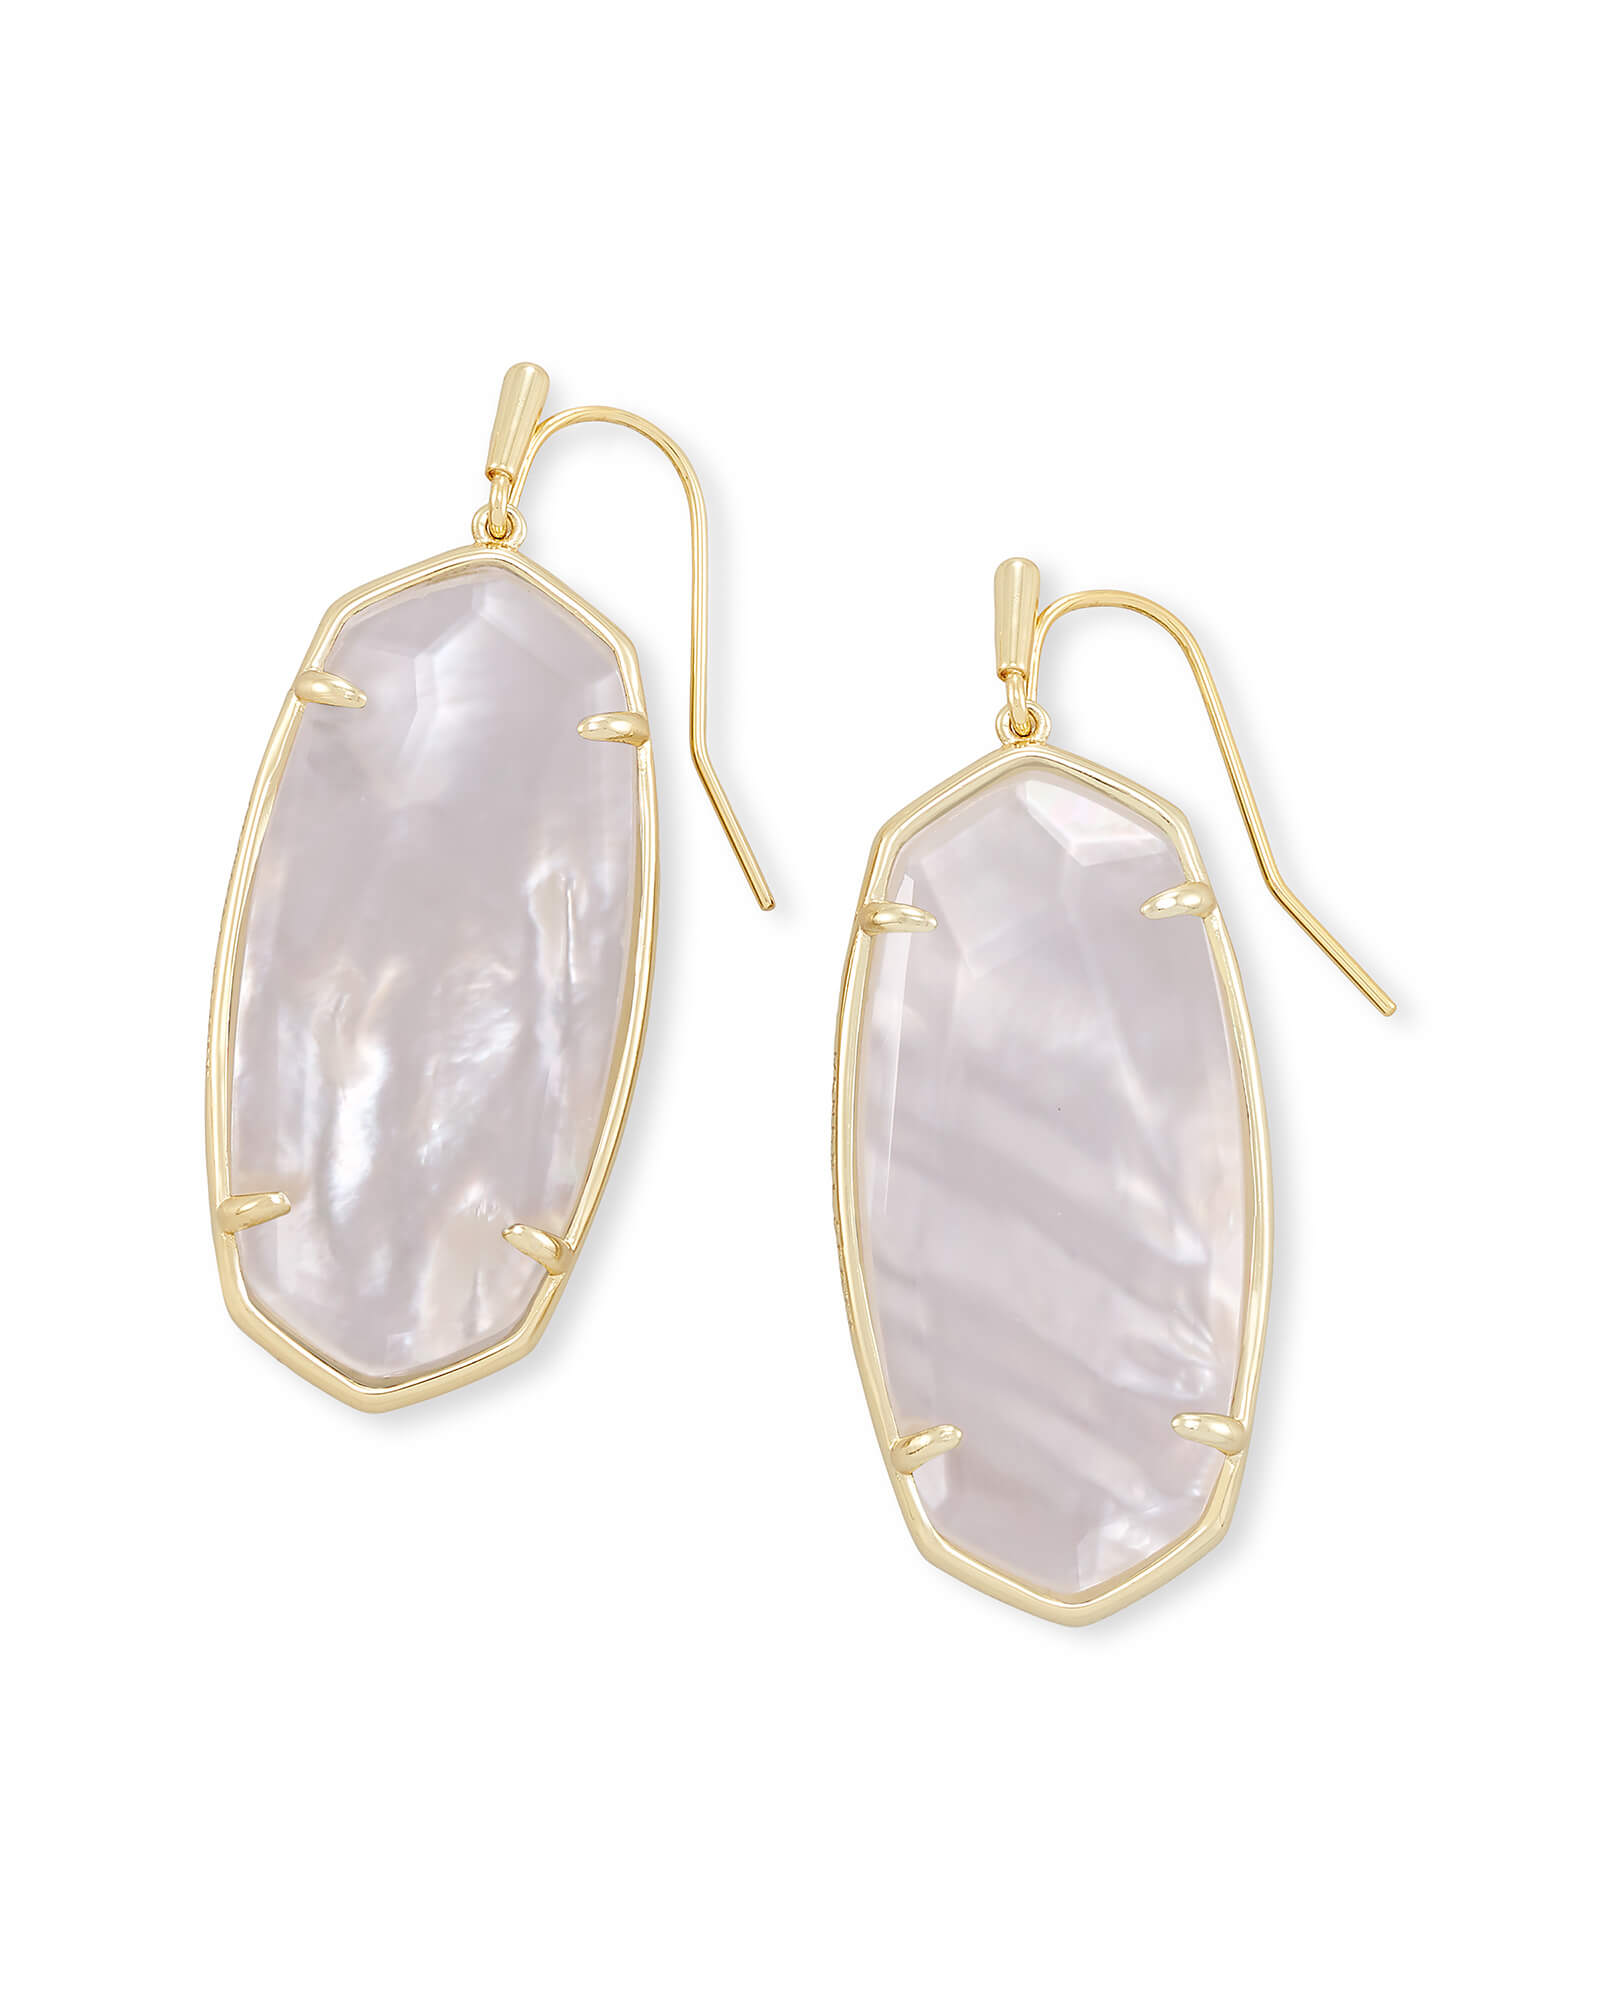 Kendra Scott Faceted Elle Gold Drop Earrings in Ivory Mother of Pearl or Rose Quartz